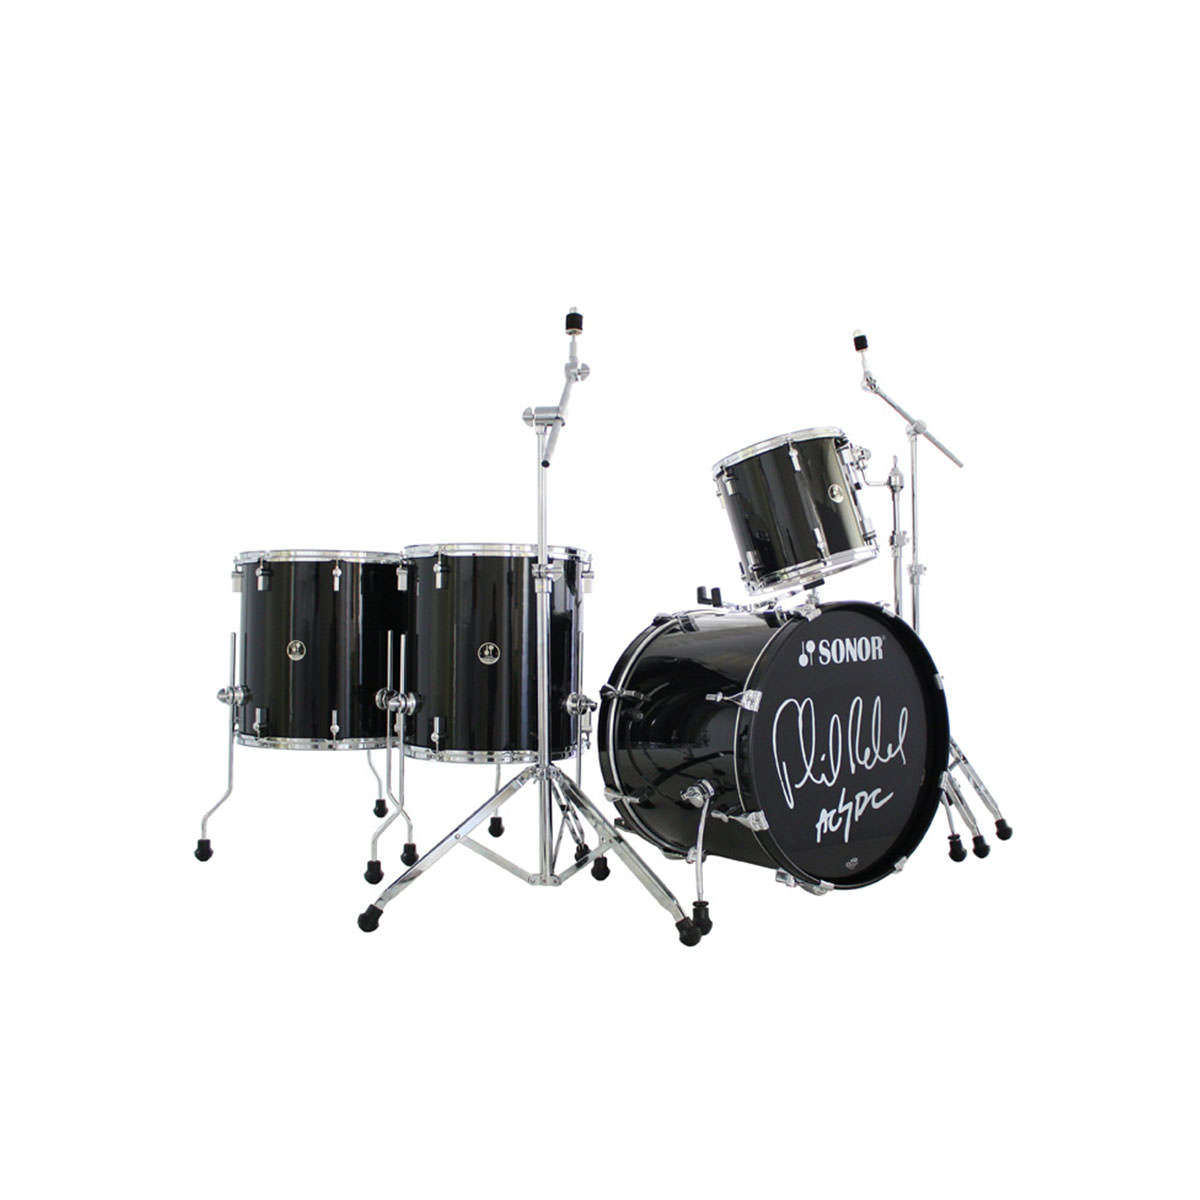 Sonor Ascent Snare Drum